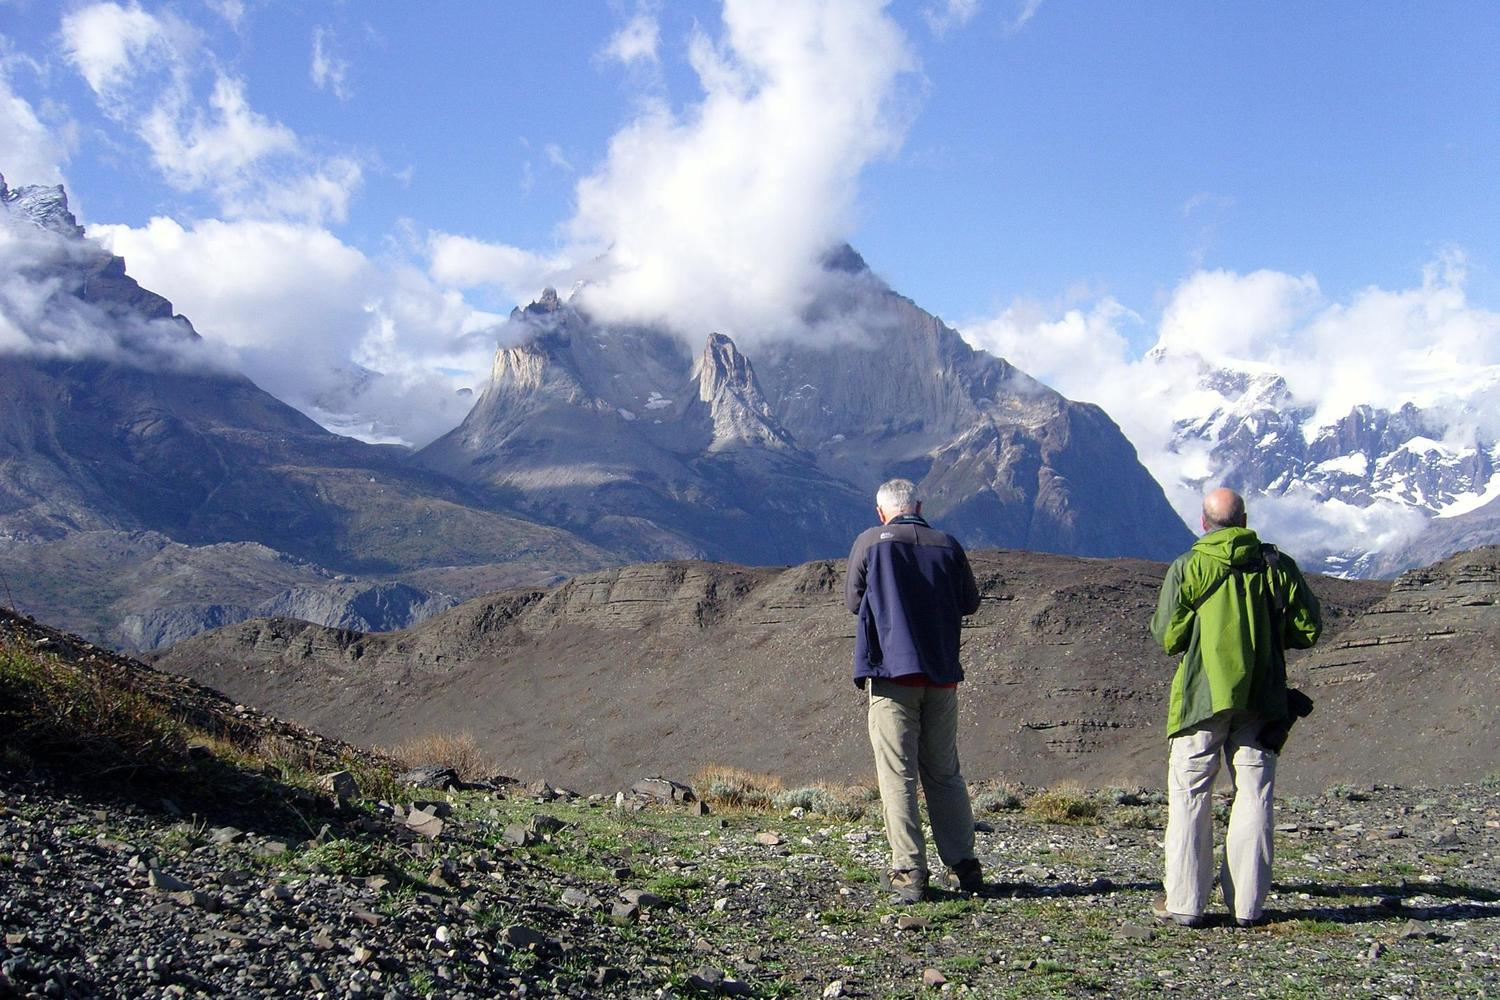 Waiting for the right light in Torres del Paine, Chile